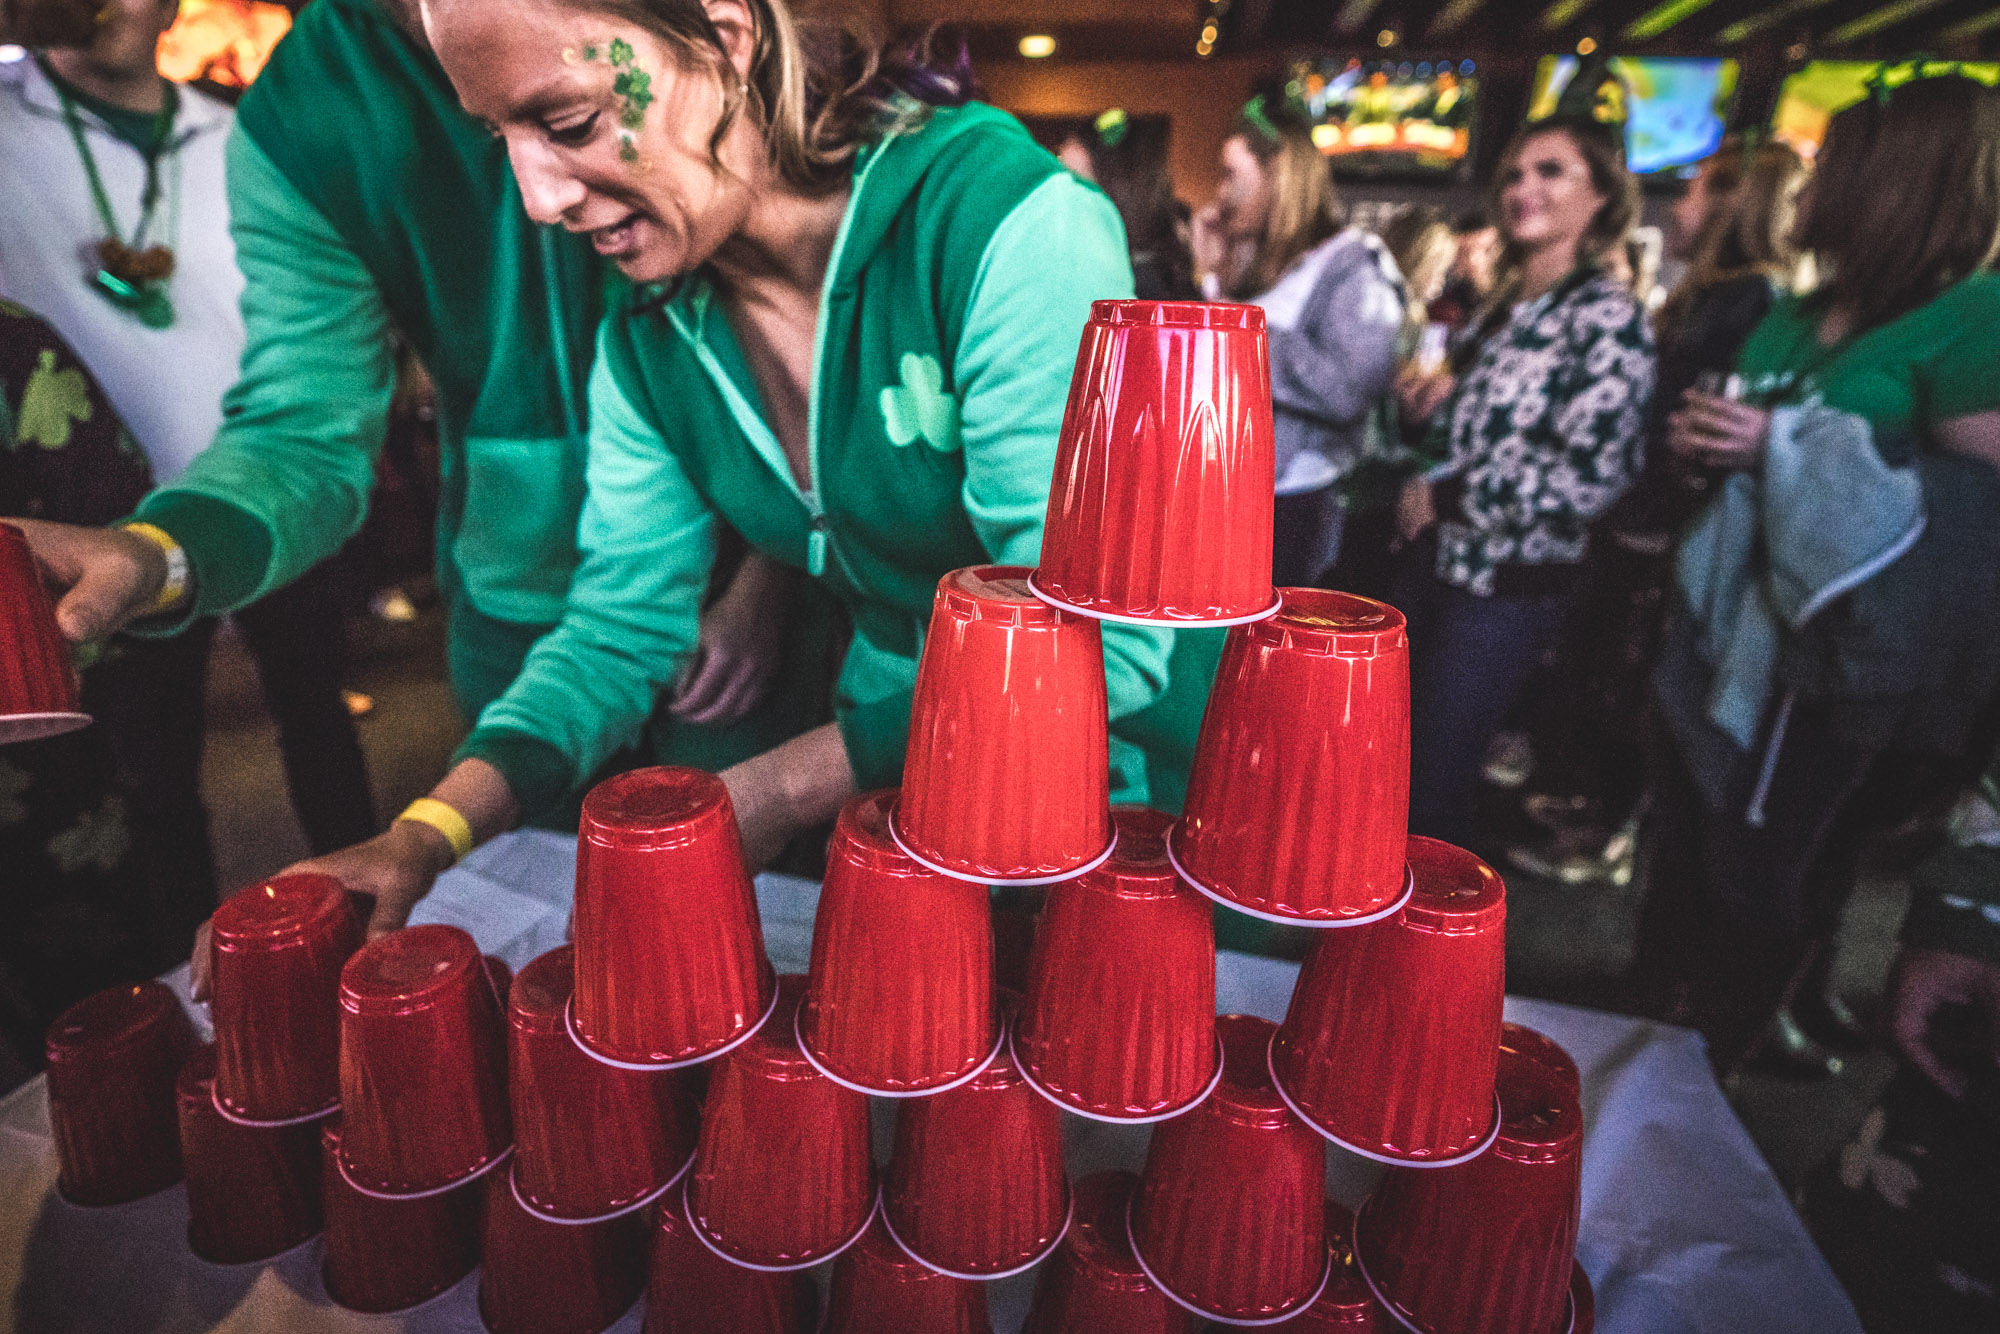 Color photo of a couple wearing St. Patrick's Day onesies trying to stack red solo cups. Photo taken at the original Colorado Tavern in downtown Littleton during the Autism Society of Colorado's Shamrock Stumble fundraiser.